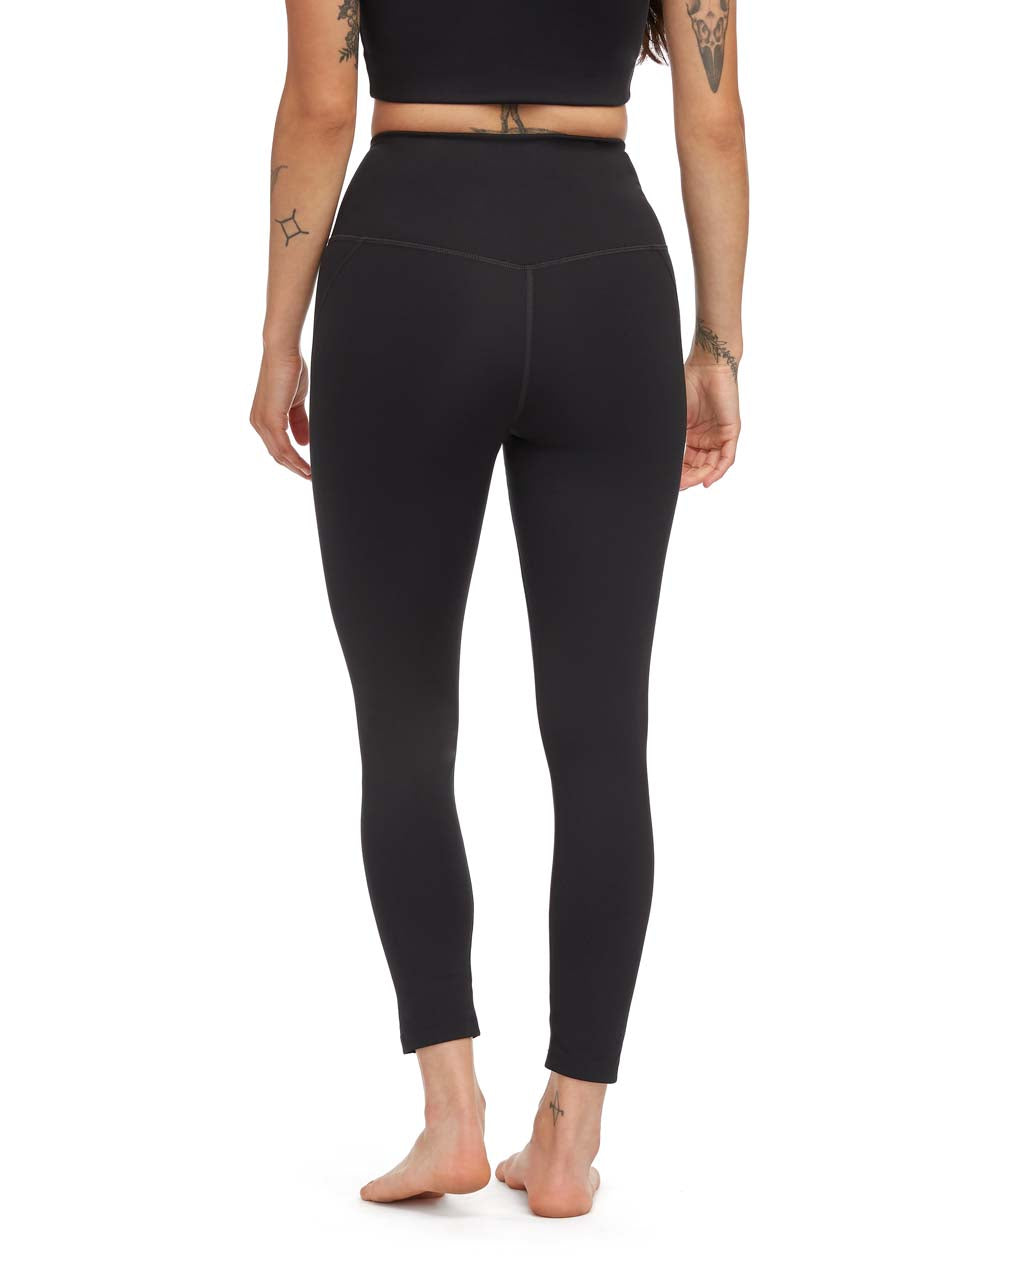 7/8 Compression Legging - Black